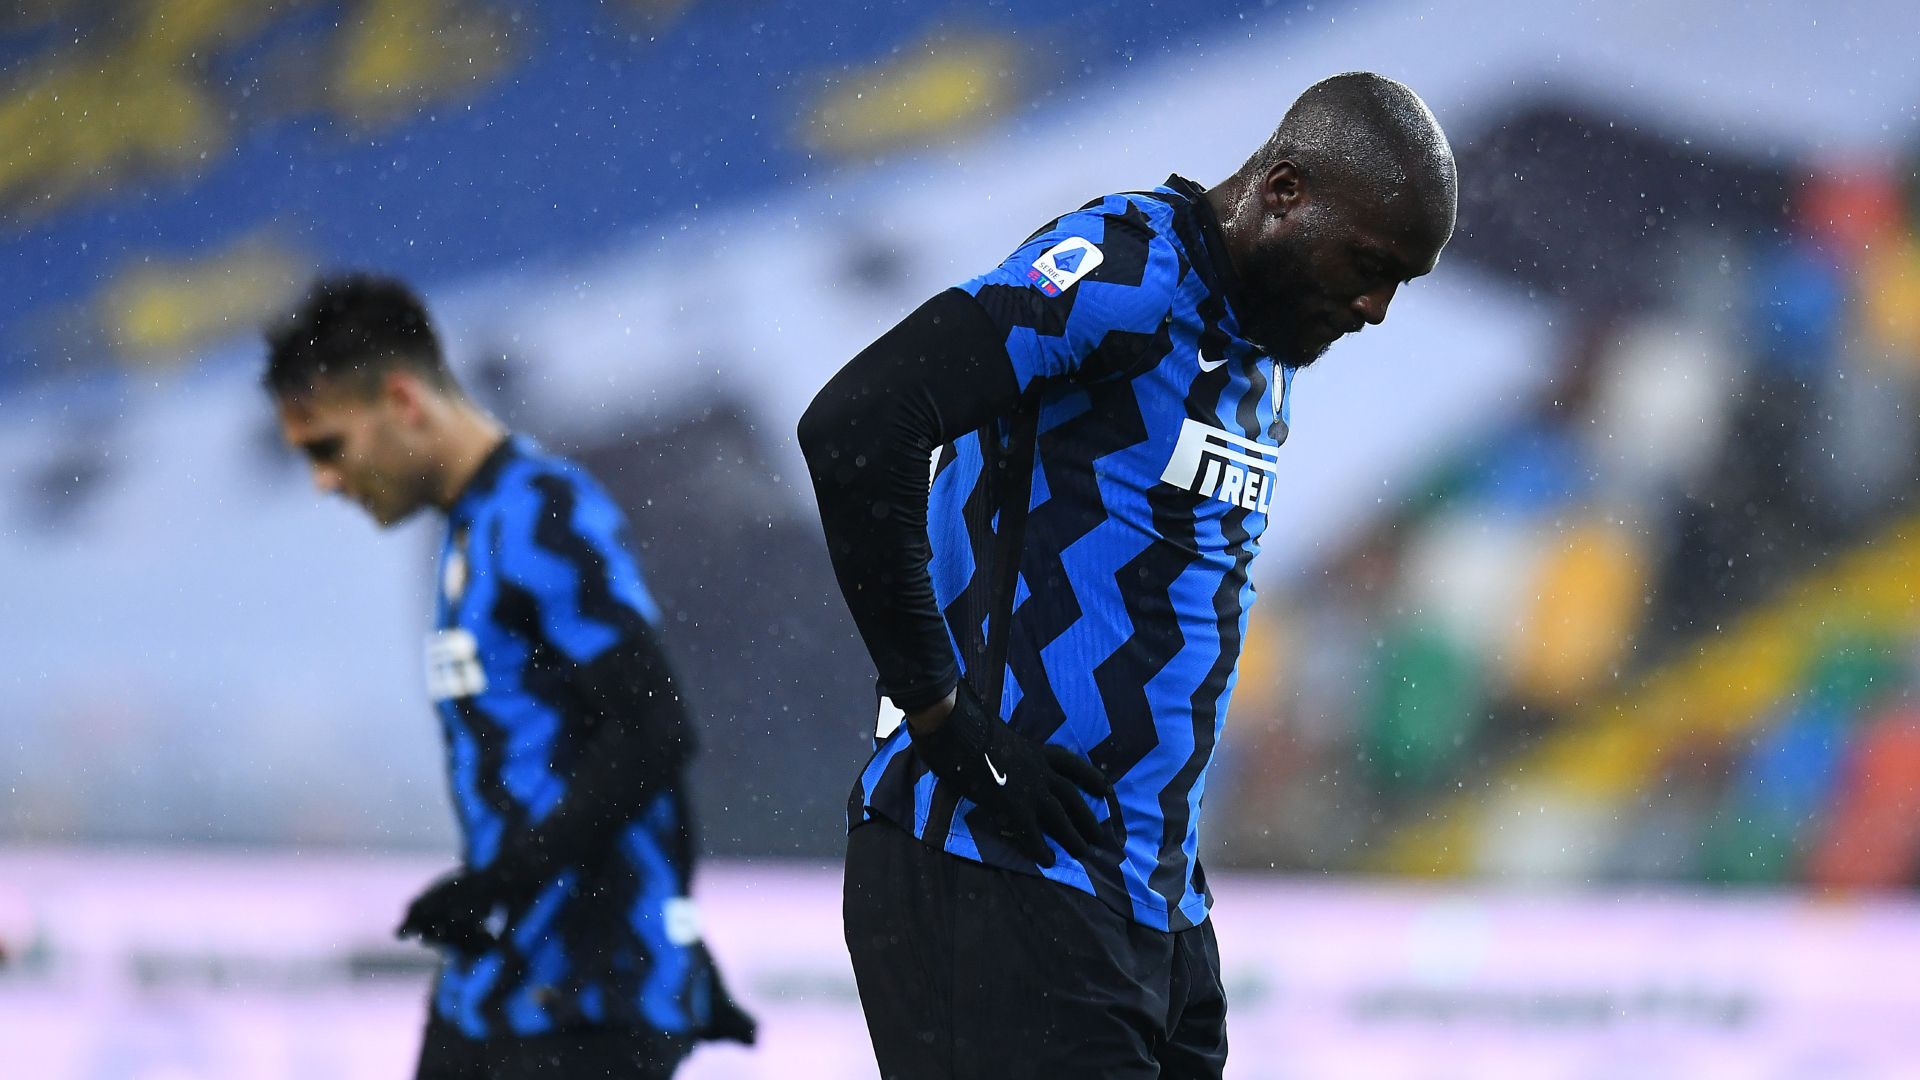 Udinese 0-0 Inter: Conte sent off as Nerazzurri miss chance to go top